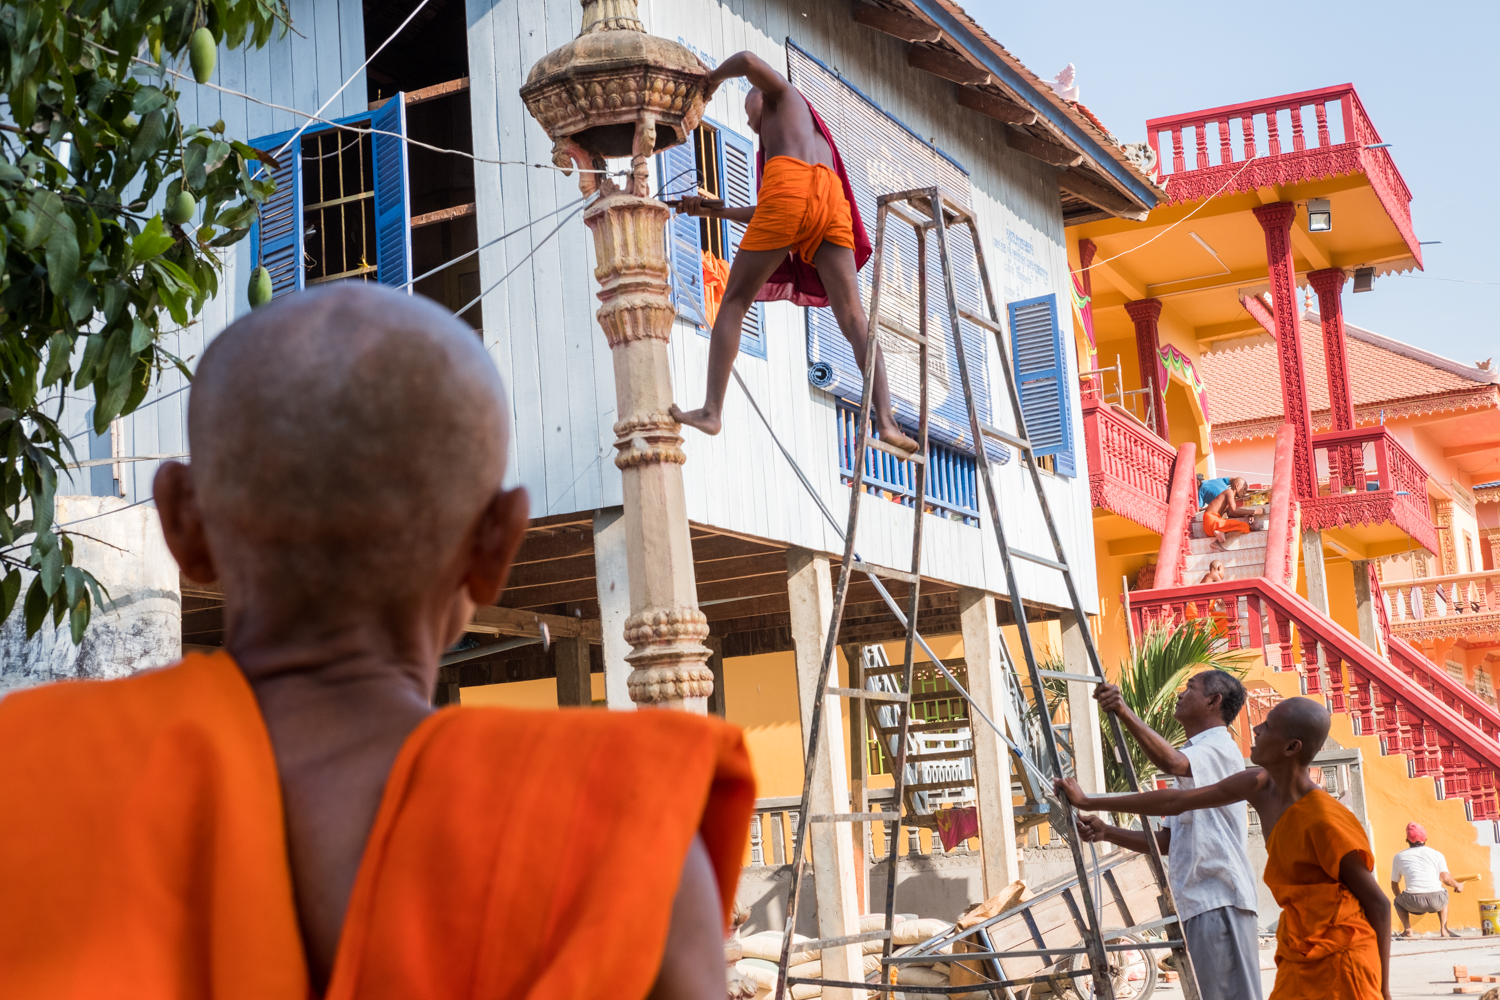 A group of monks perform construction activities outside their temple in Angkor Ban, Cambodia.